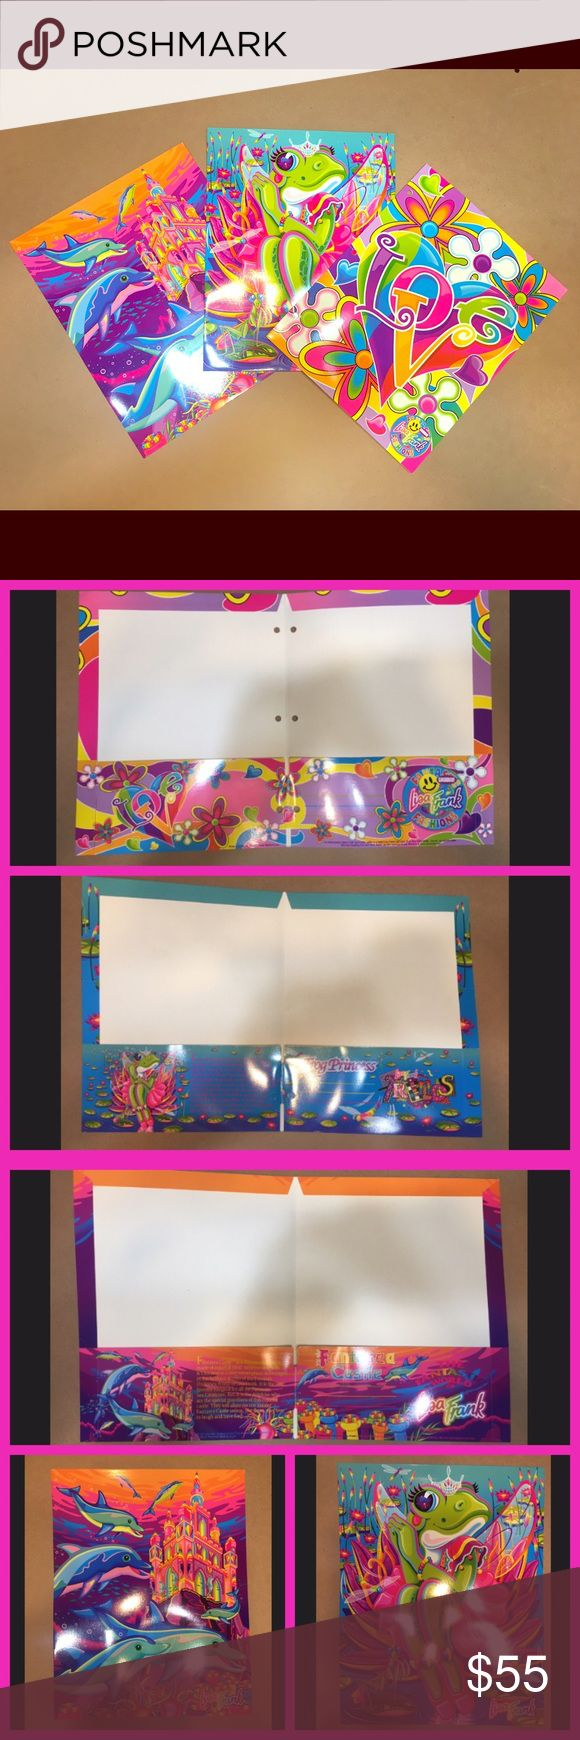 🌈RARE🌈 Vintage Lisa Frank Bundle Set of three, 90's Lisa Frank folders. These are brand new and still have the holes in tact. These are rare, vintage prints and are no longer in production. Accessories